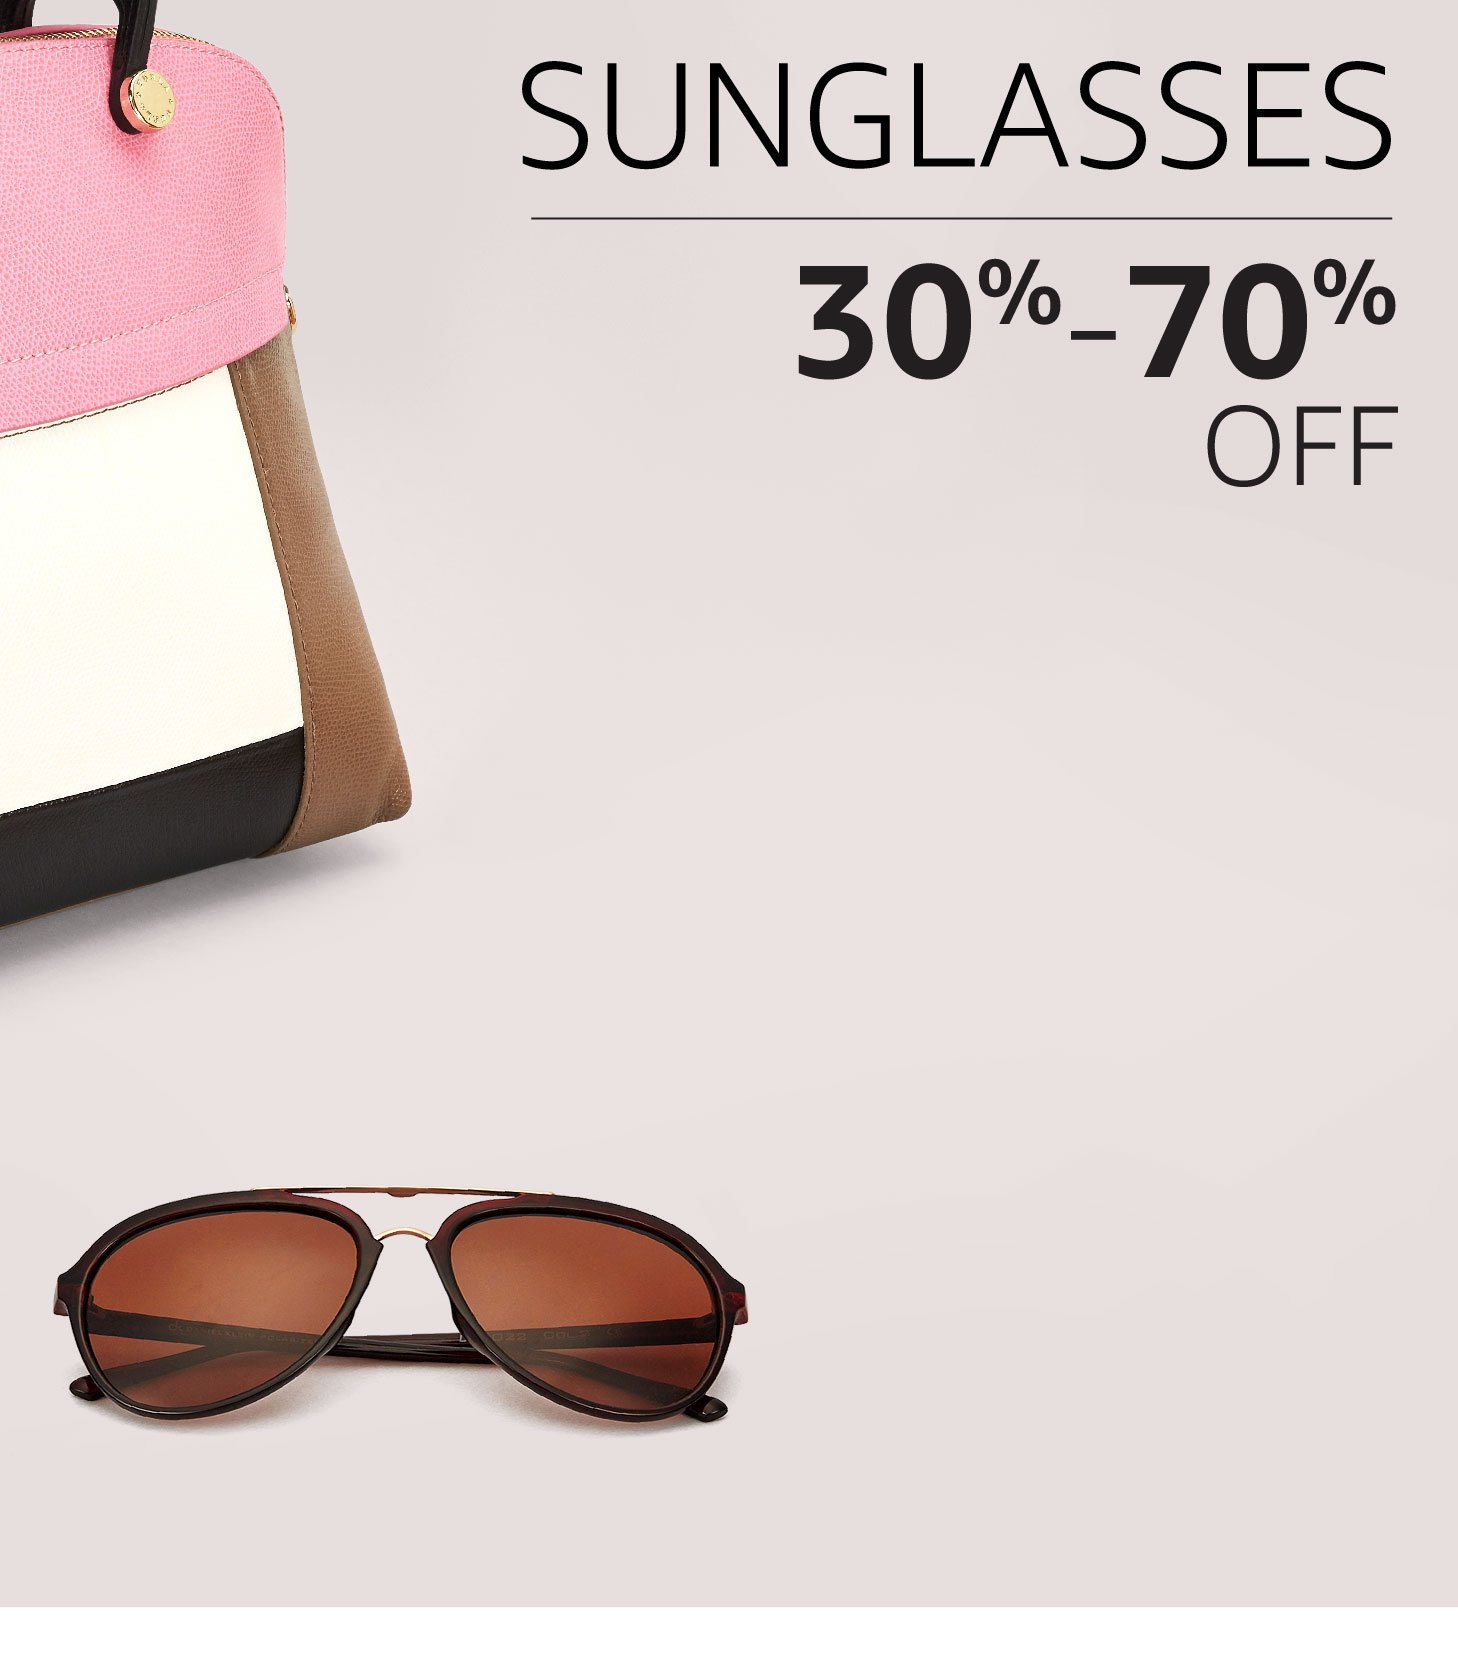 Sunglasses: 30% to 70% off